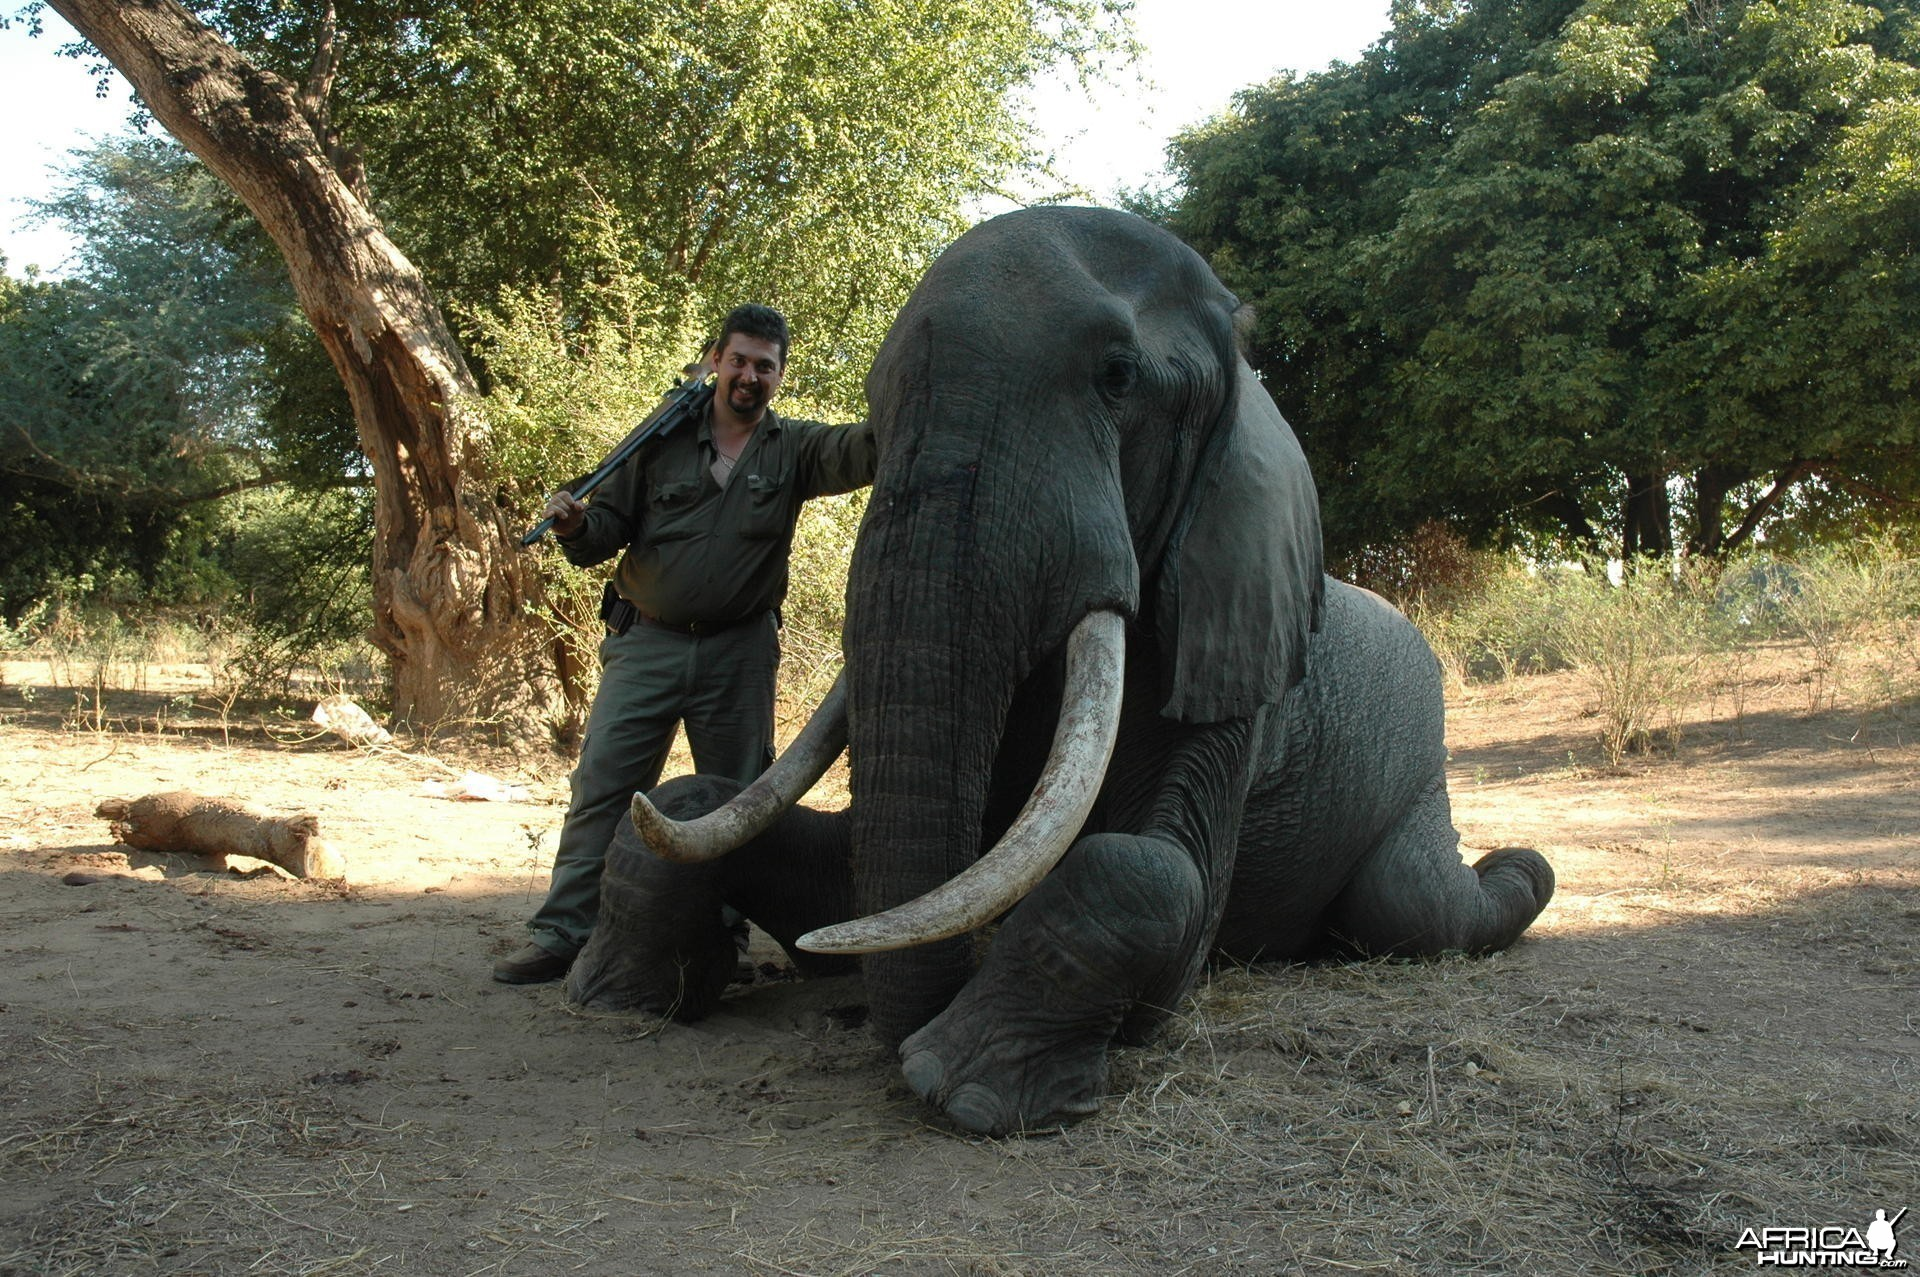 40/41 pounds Elephant hunted in Zimbabwe